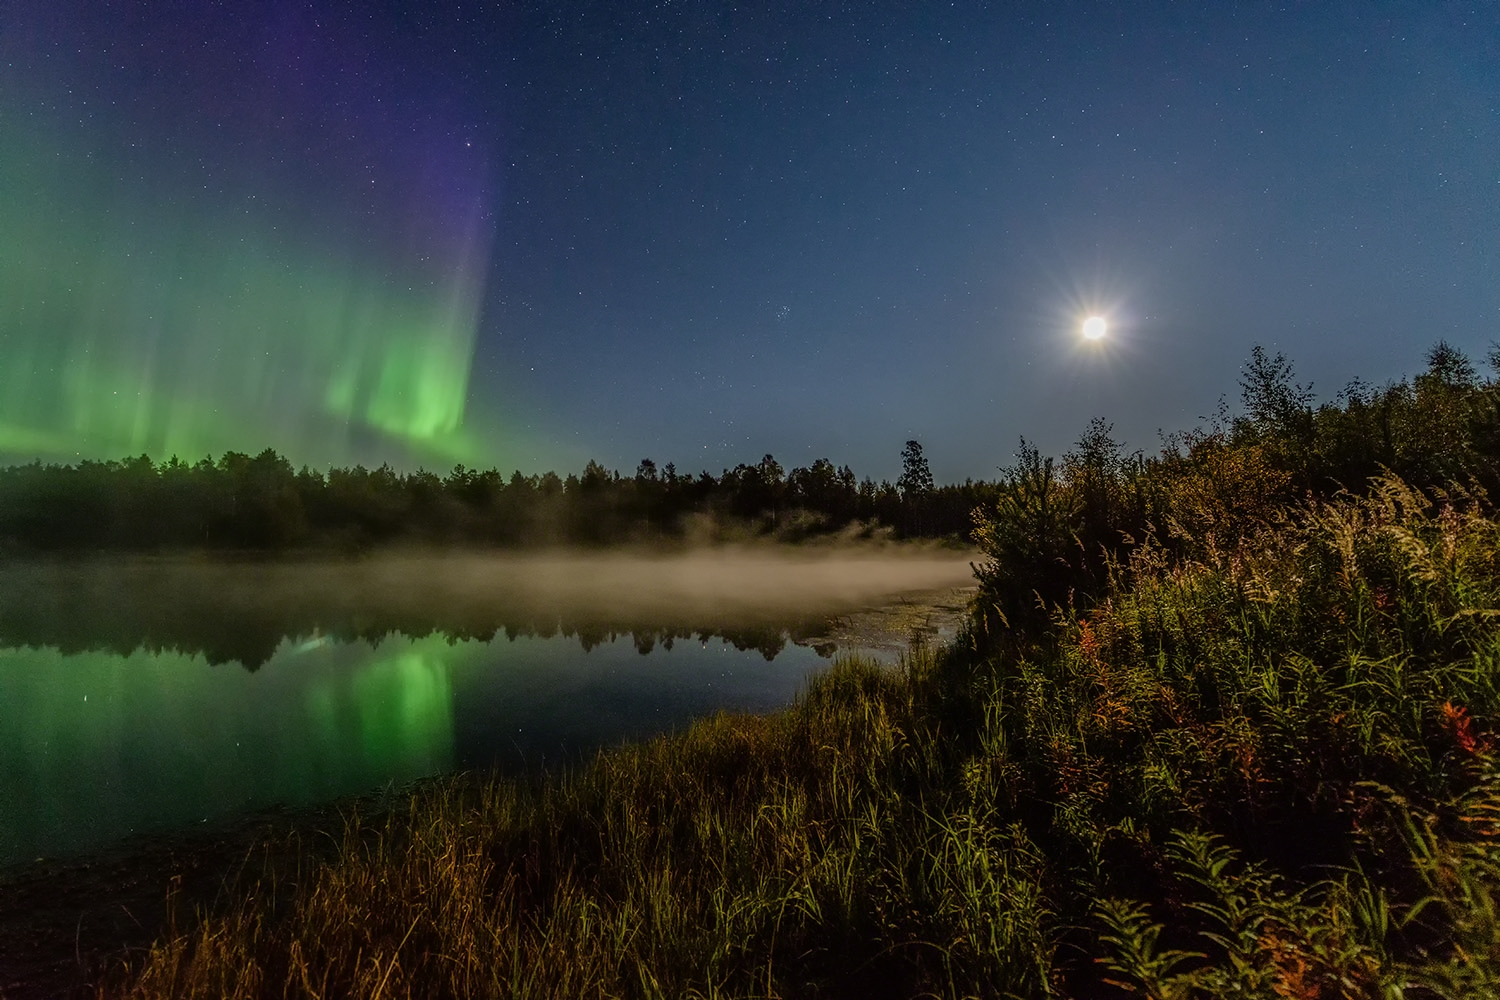 Autumn auroras in moonlight